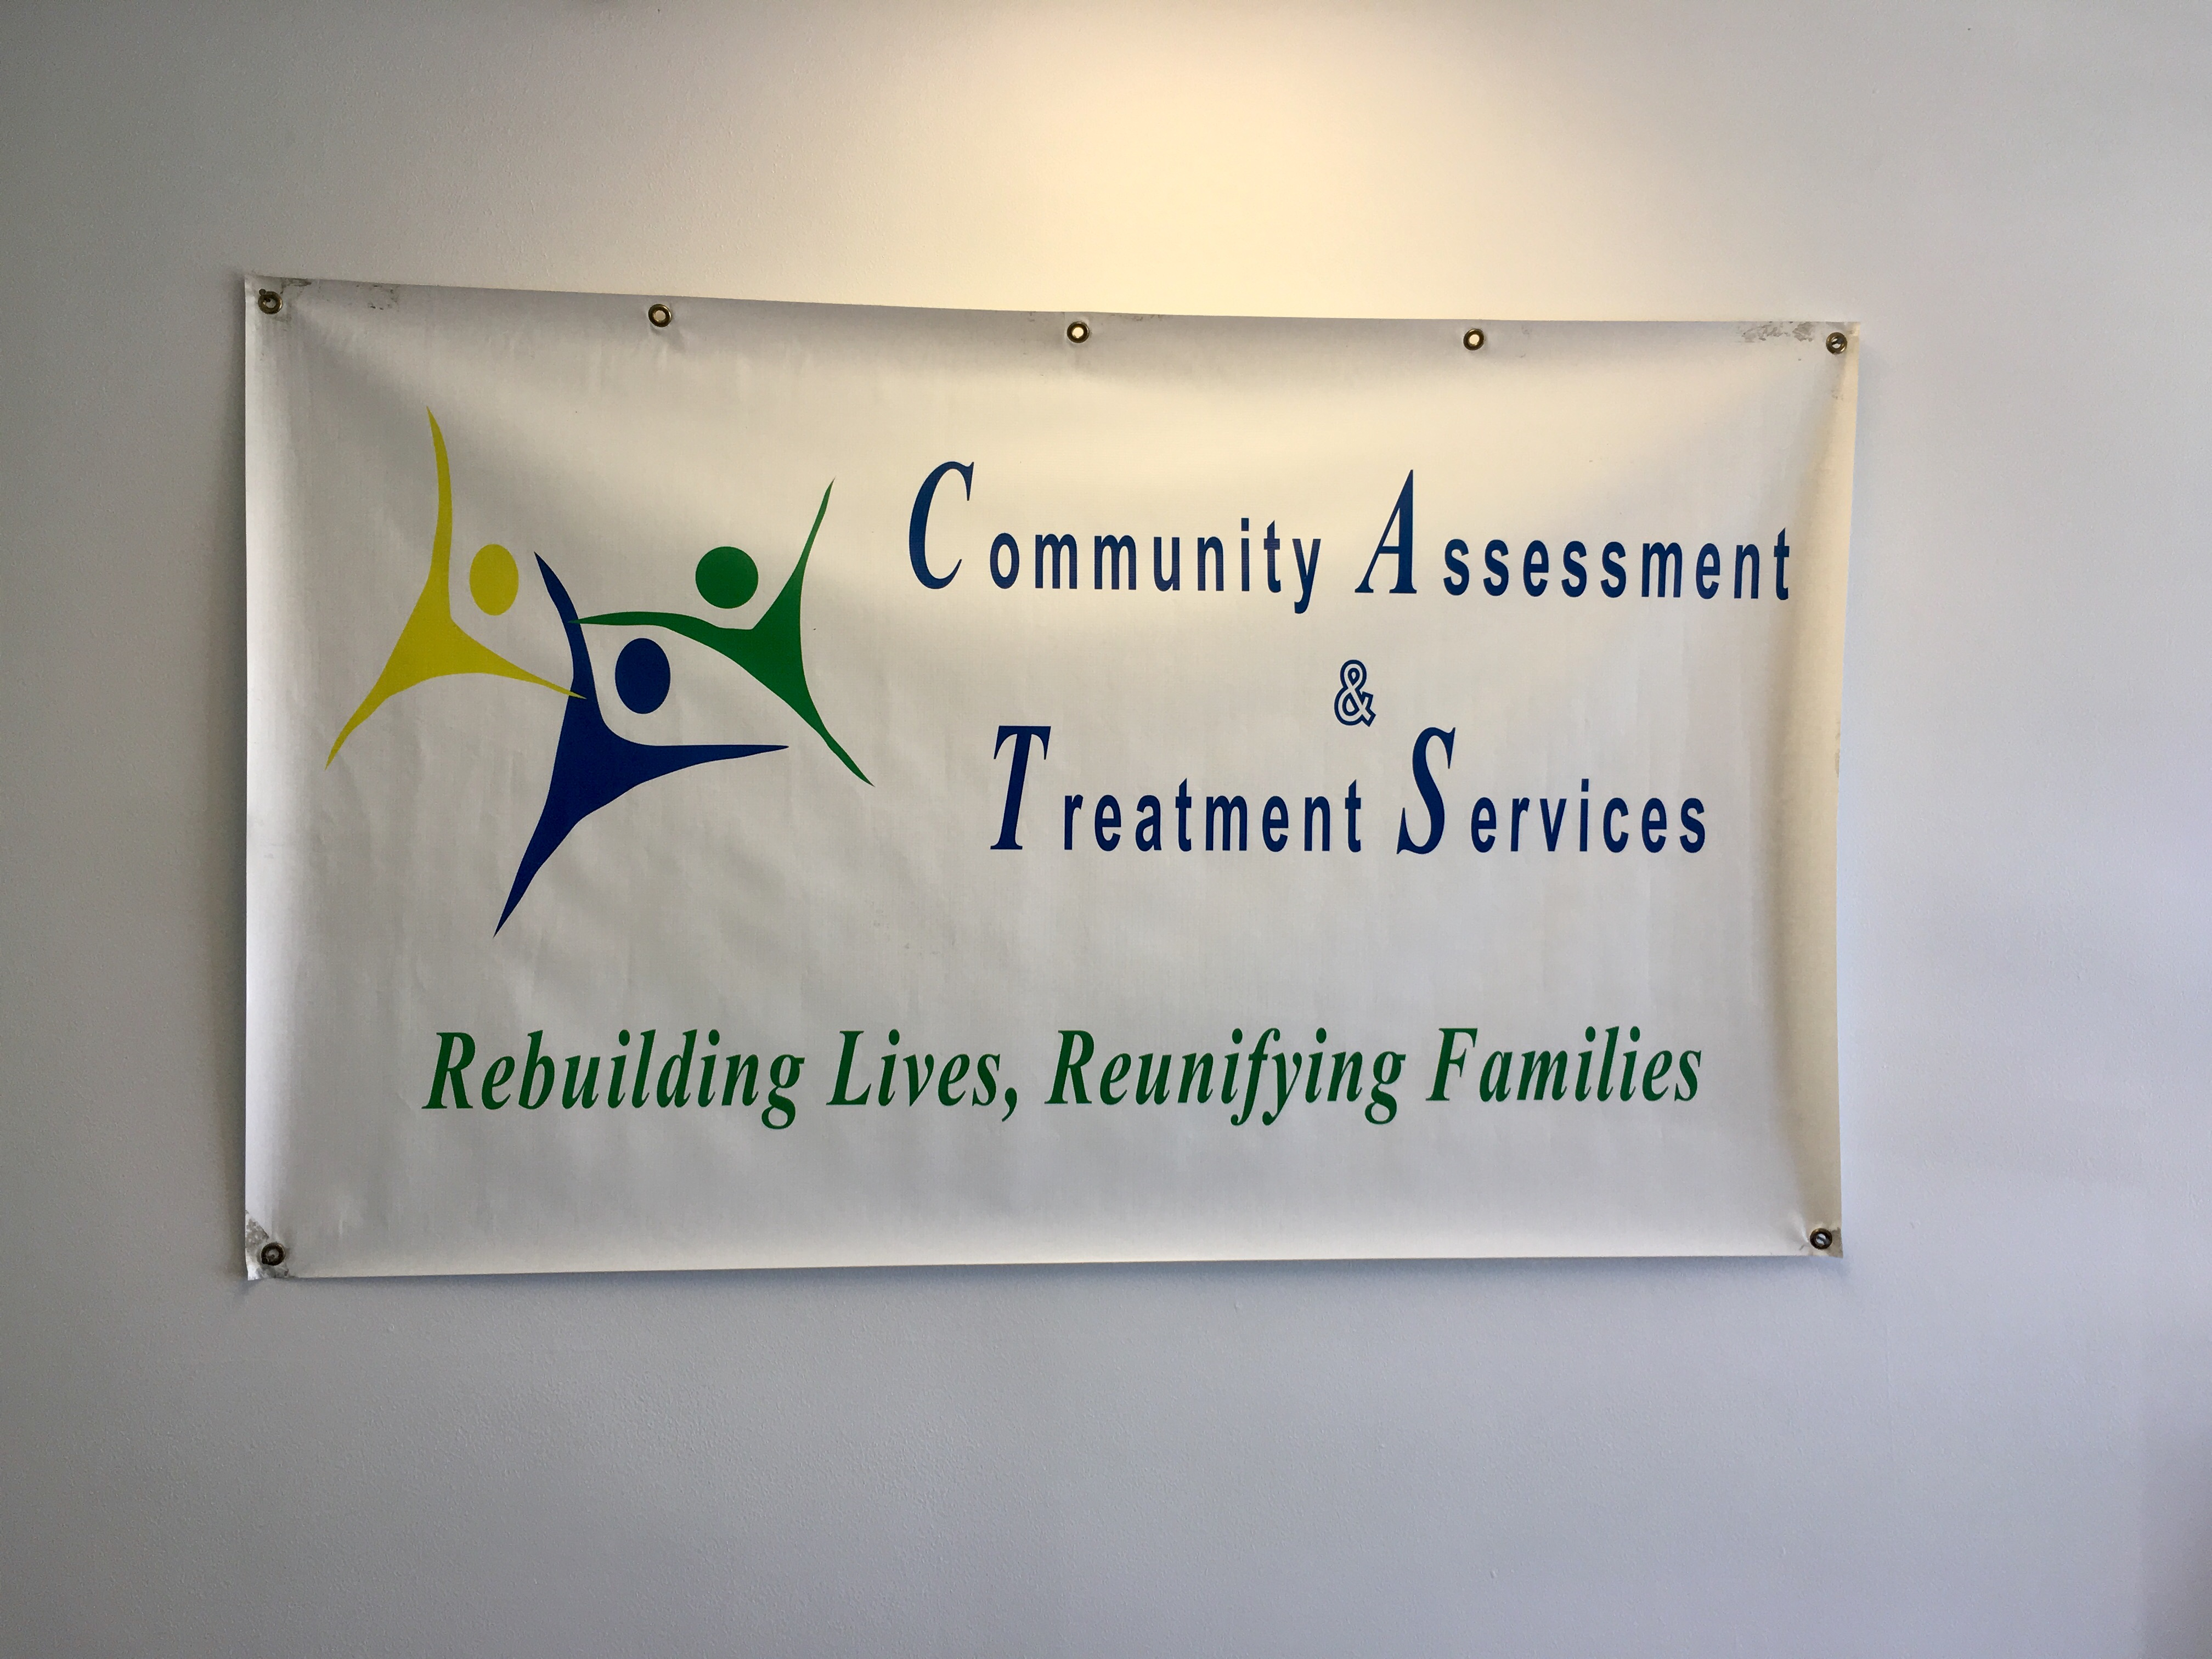 Community Assessment & Treatment Services